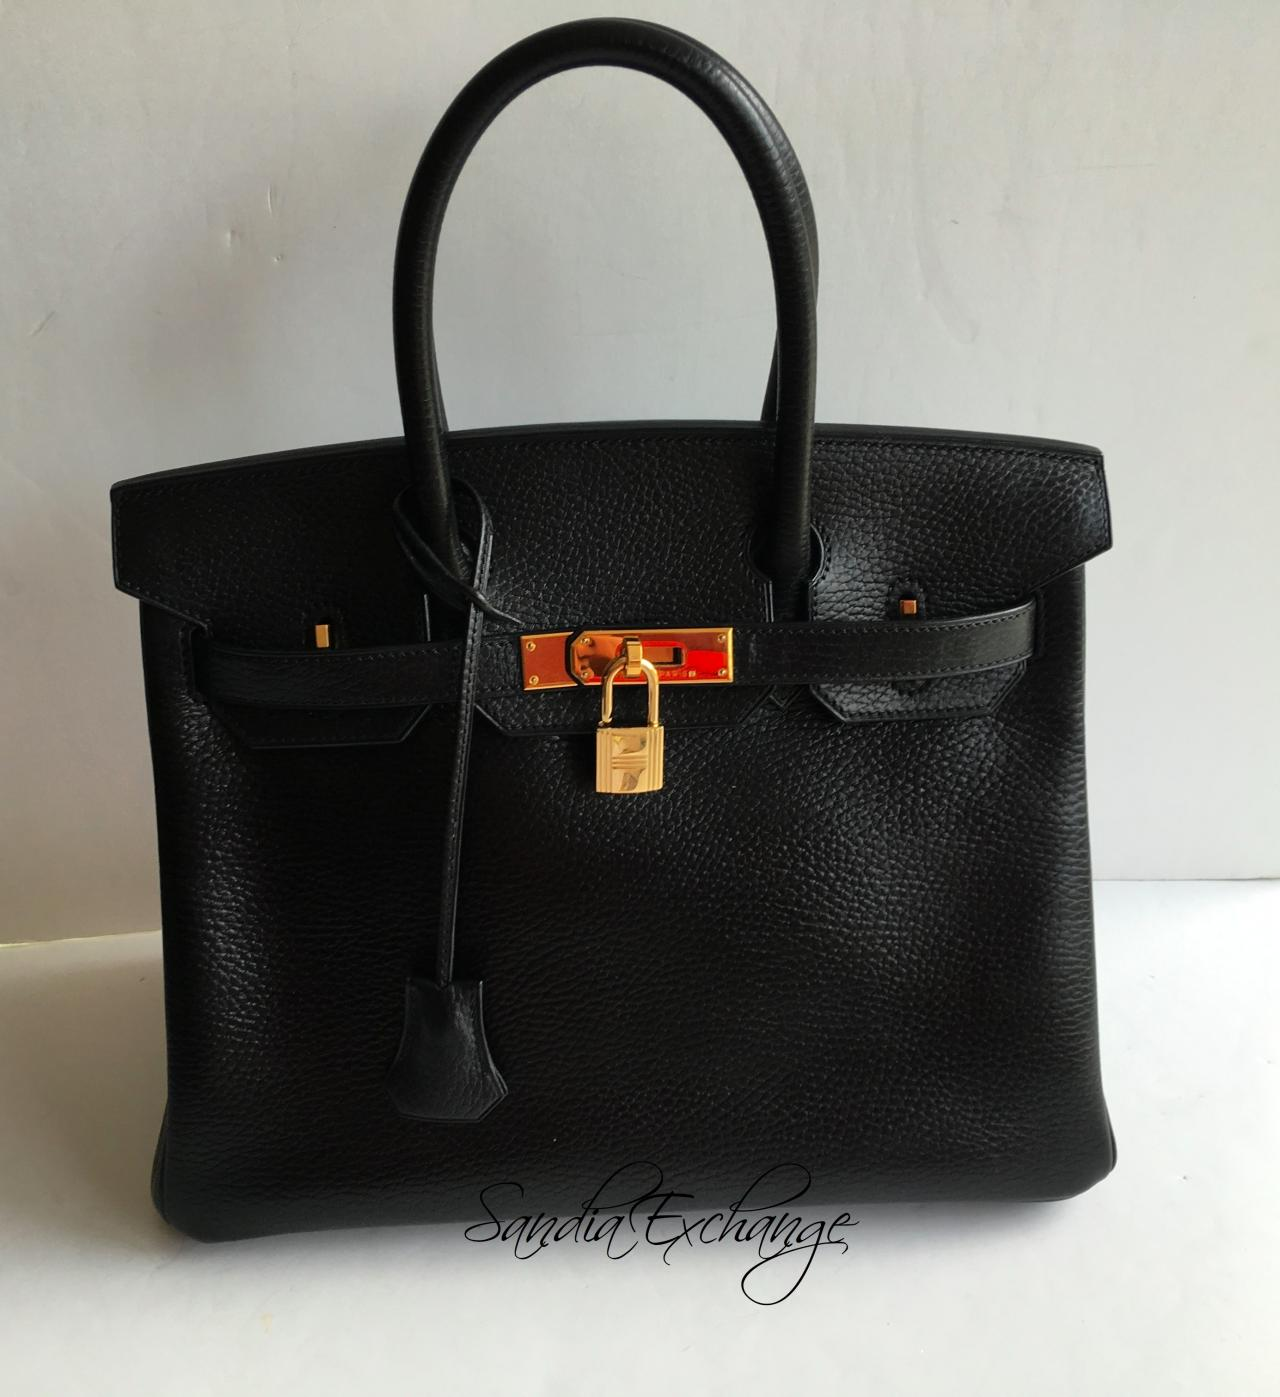 hermes for sale  - Birkin Gallery